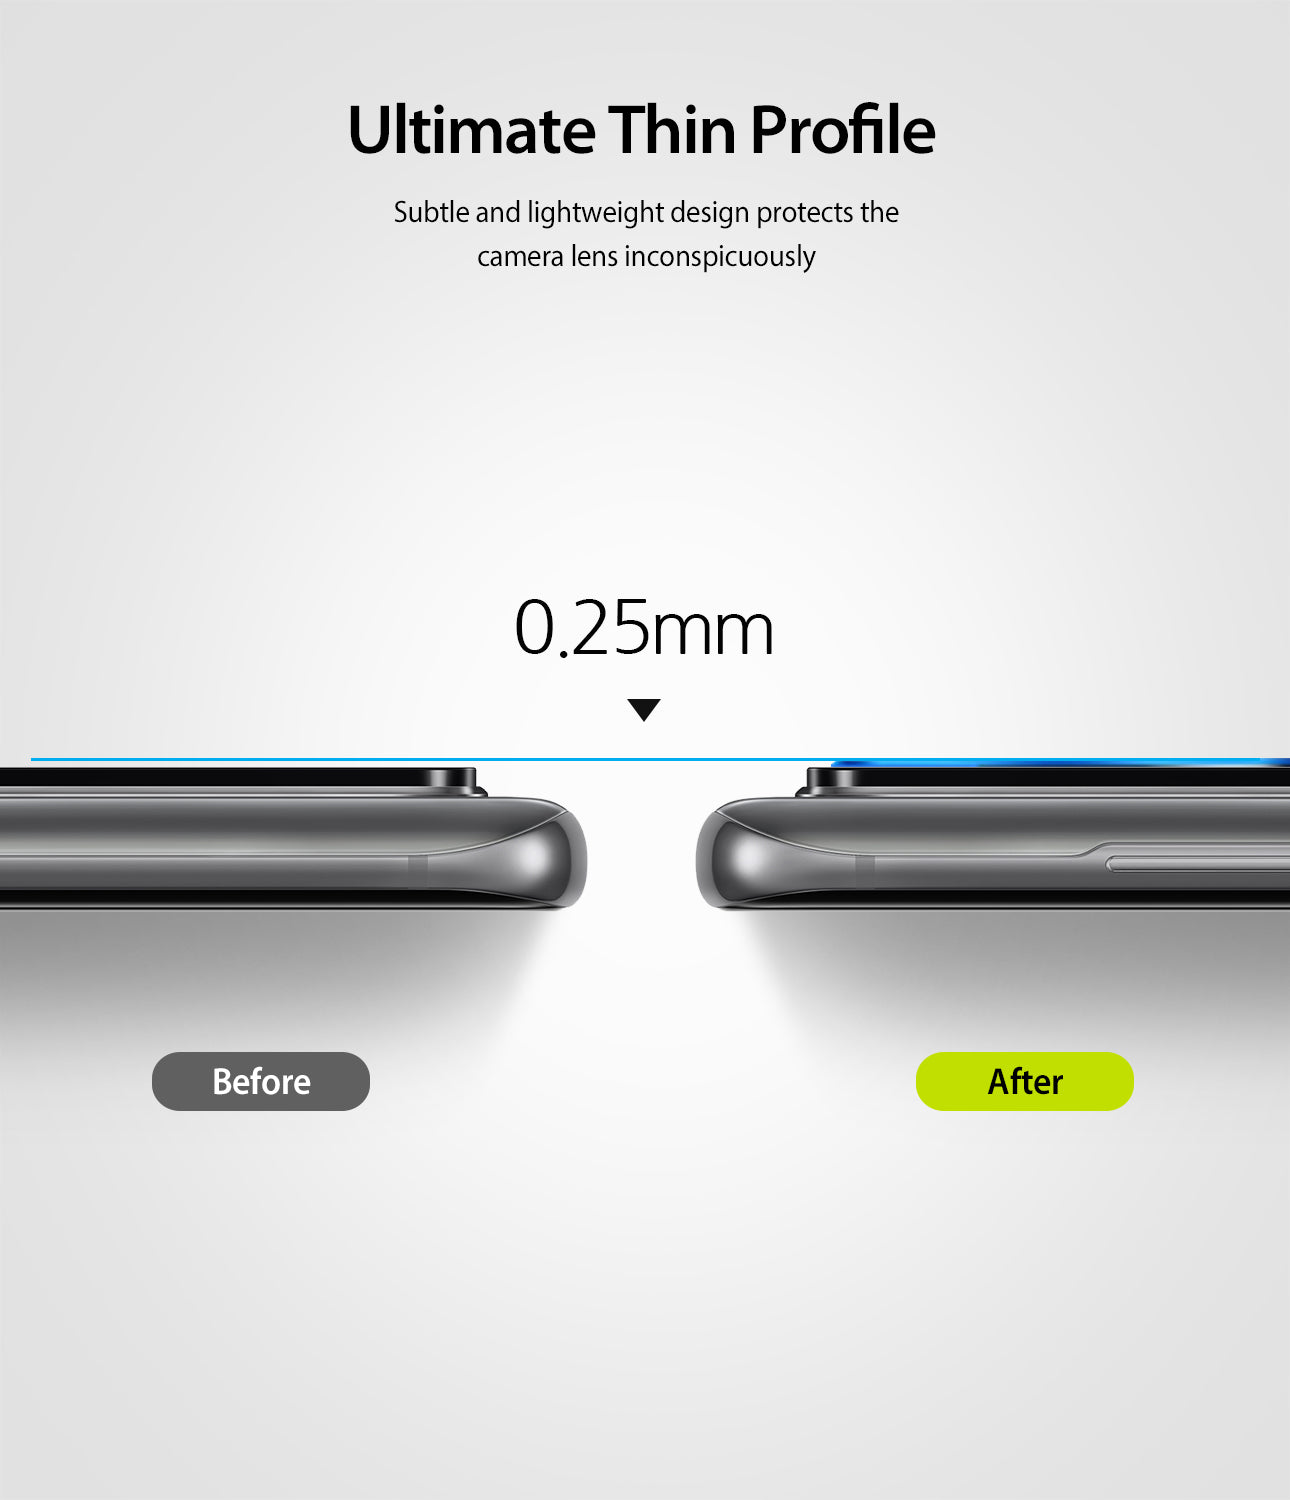 ultimate thin profile of 0.25mm